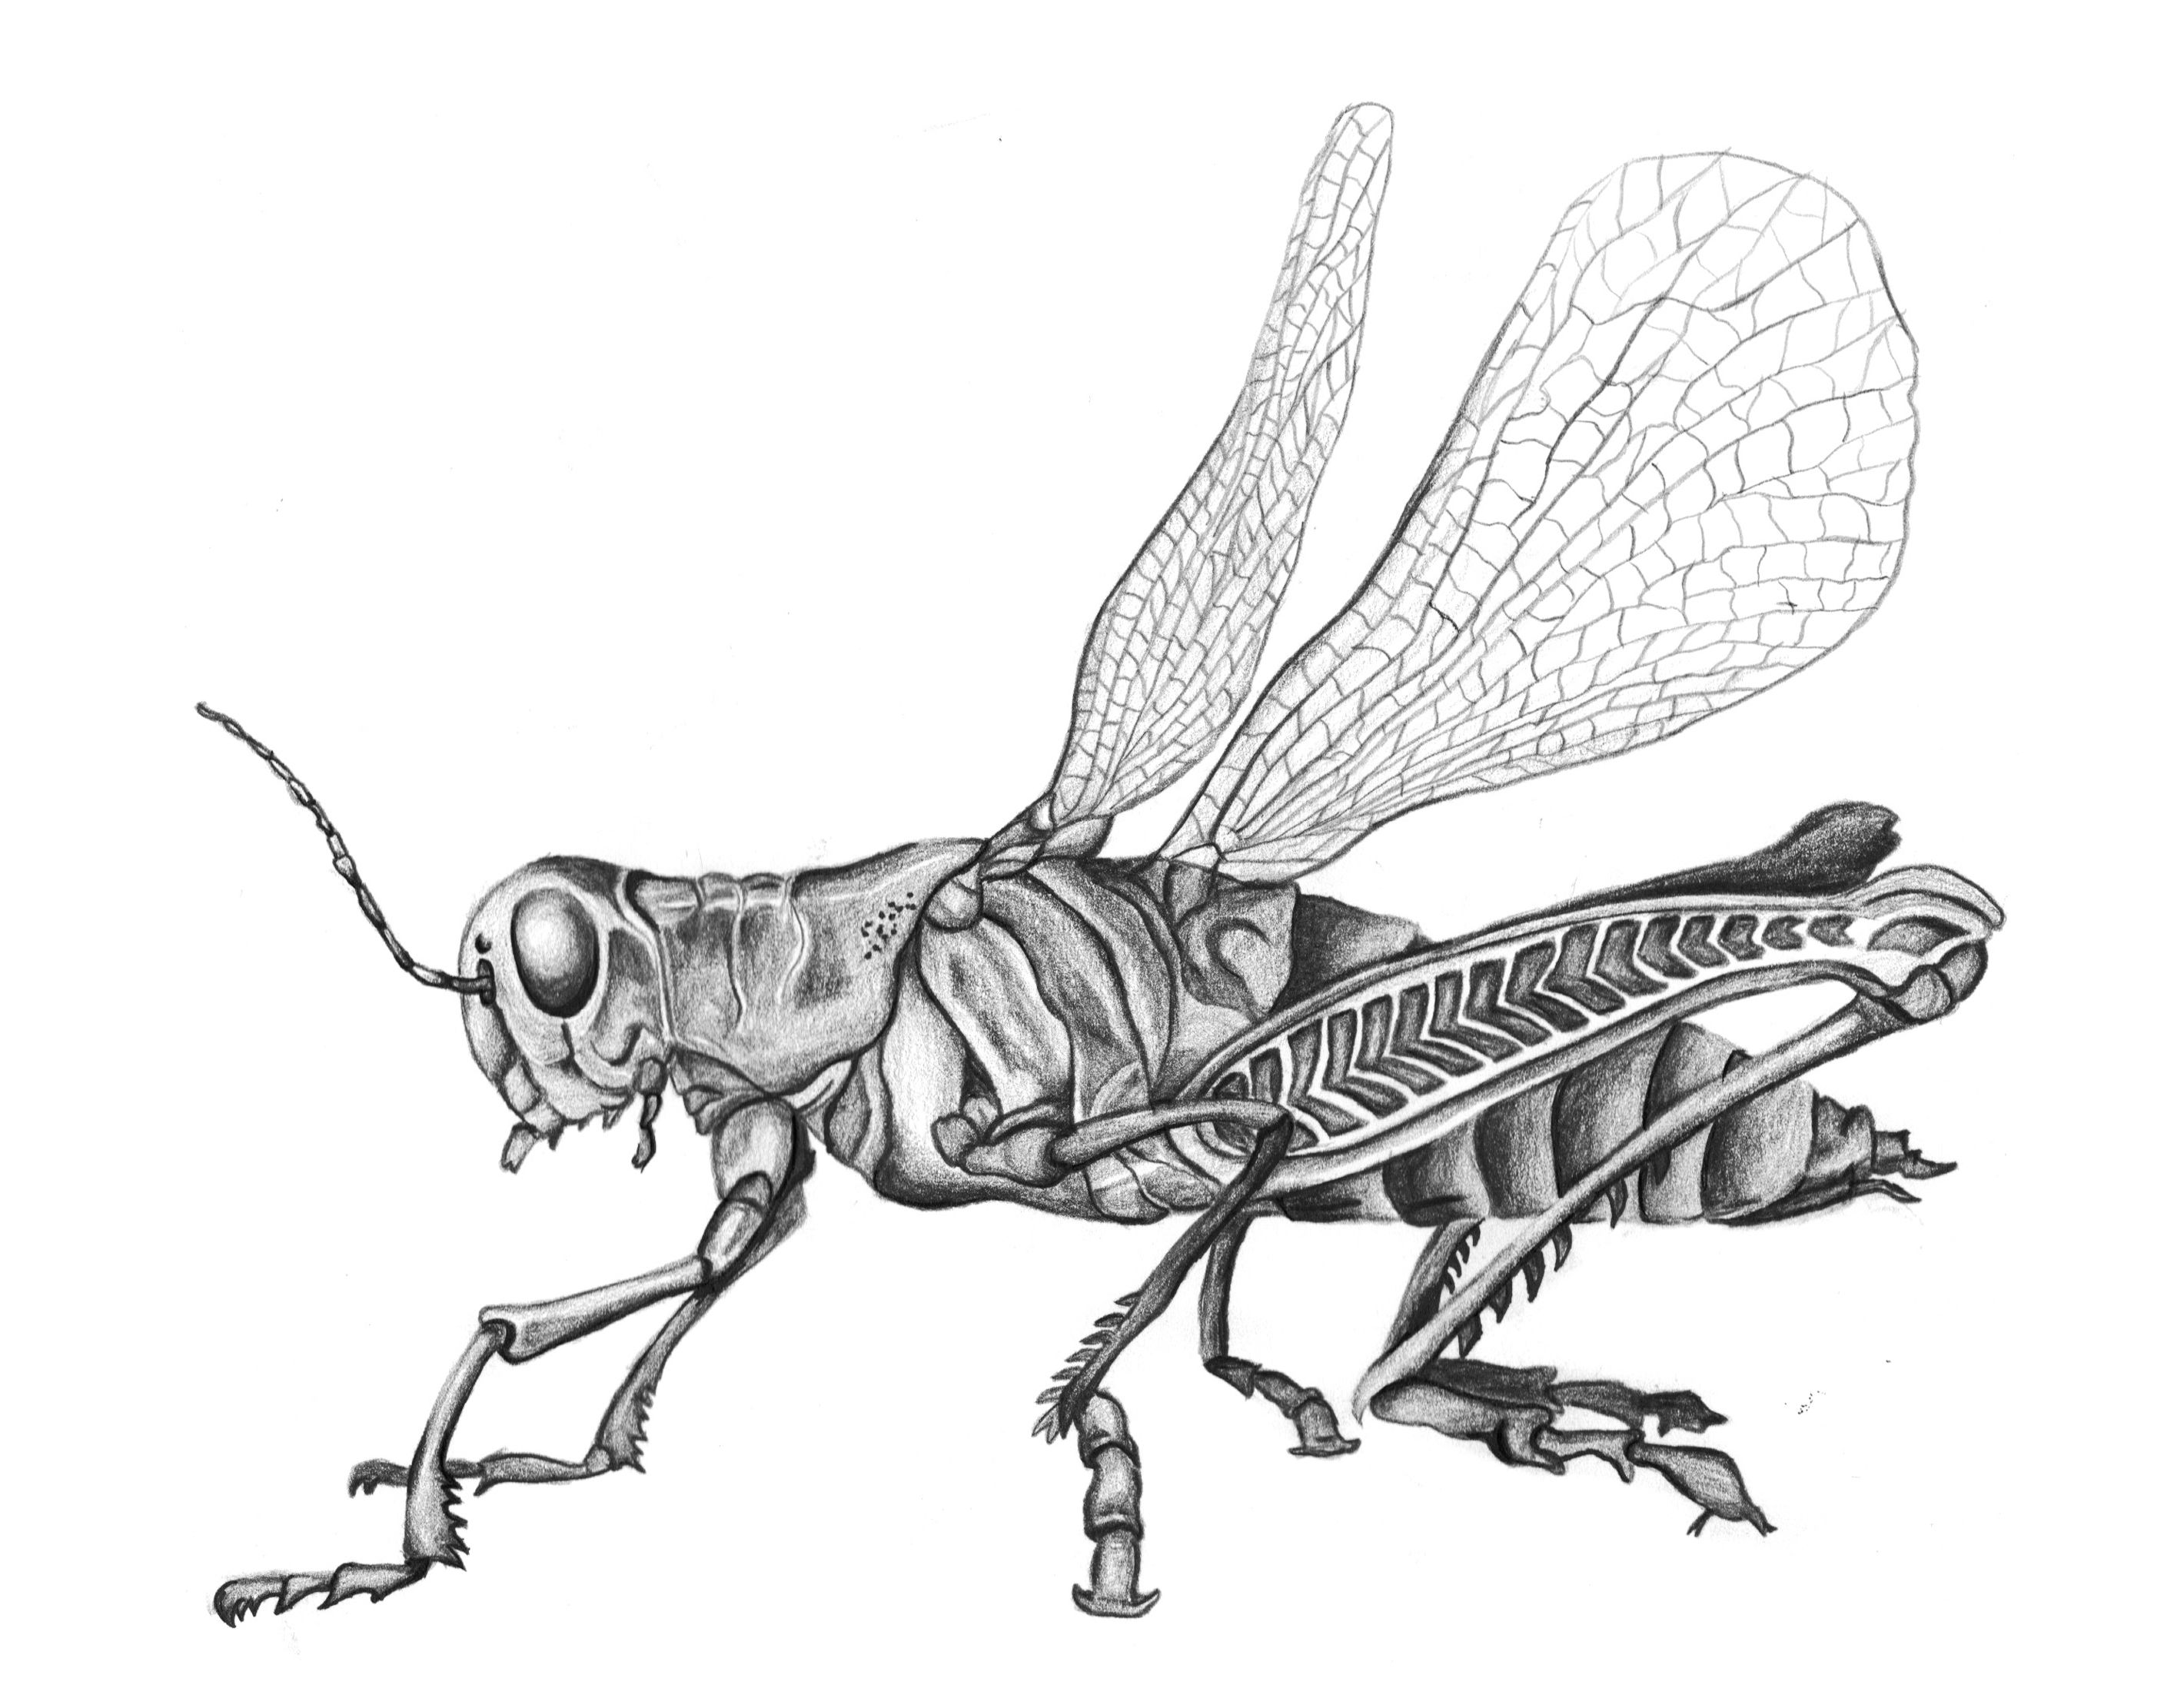 grasshopper drawing filegrasshopper psfpng wikimedia commons grasshopper drawing